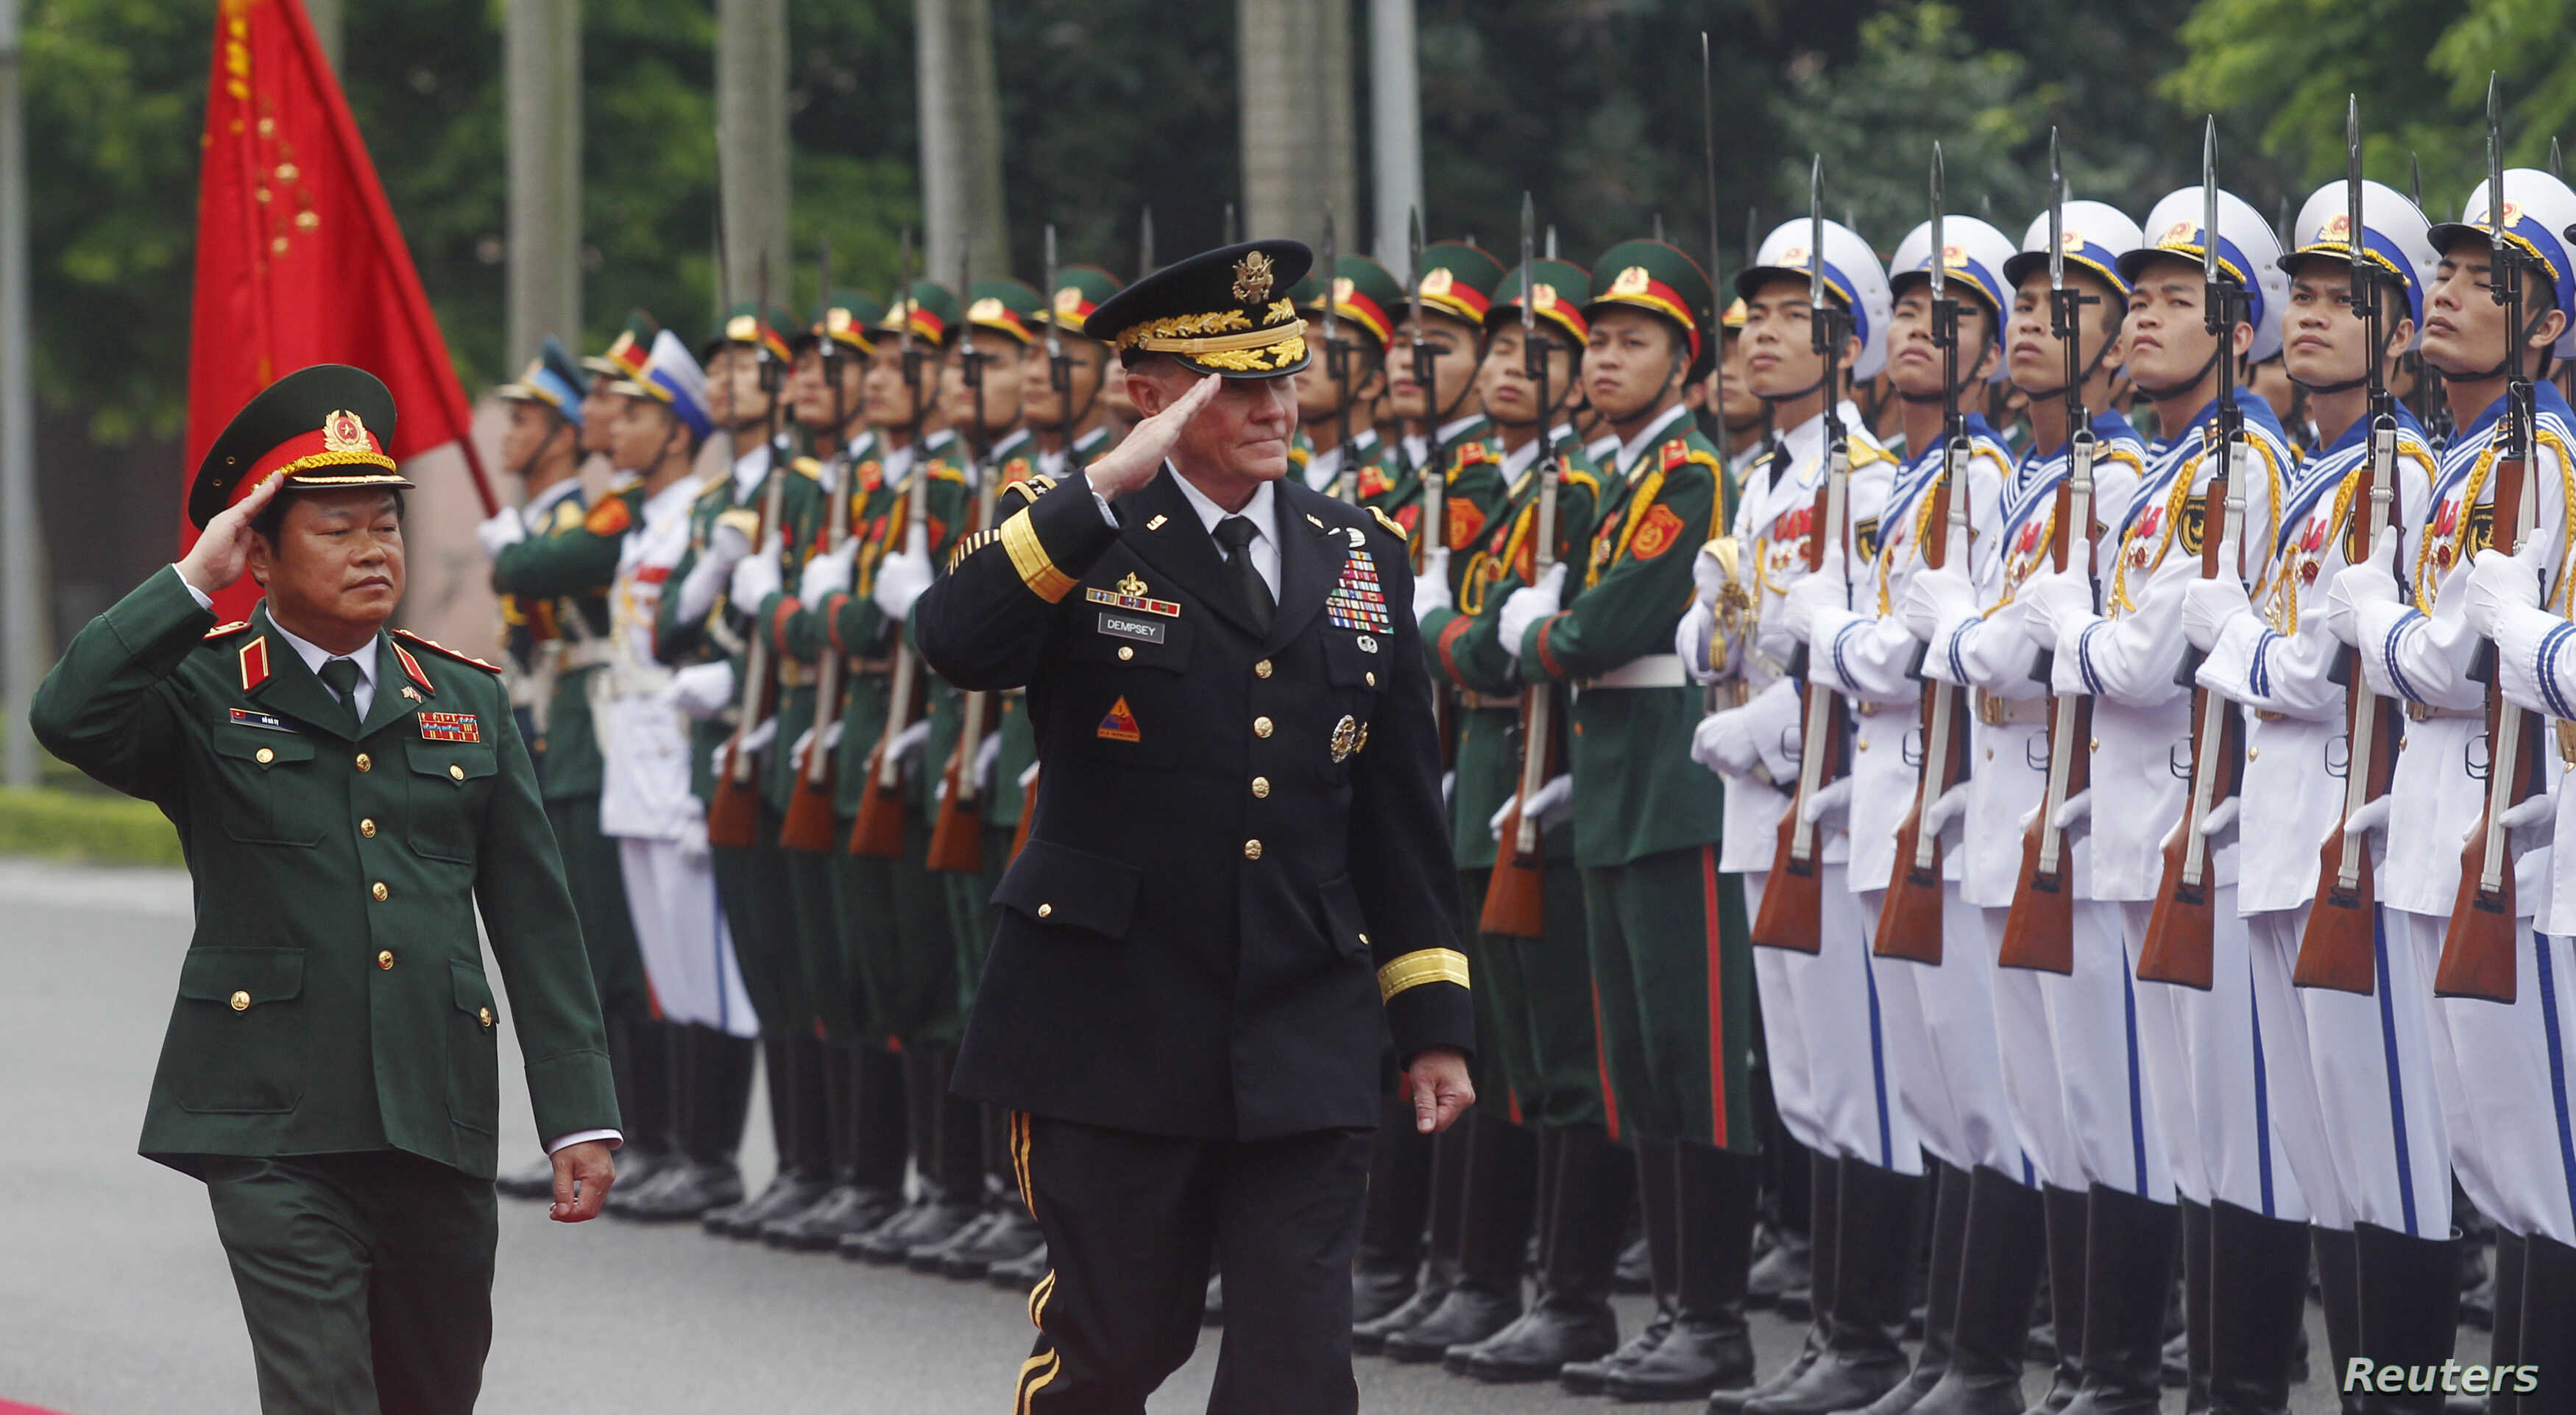 U.S. Chairman of the Joint Chiefs of Staff General Martin Dempsey (C) reviews the guard of honour with his Vietnamese counterpart General Do Ba Ty during a welcoming ceremony at Vietnam's Defence Ministry in Hanoi August 14, 2014.